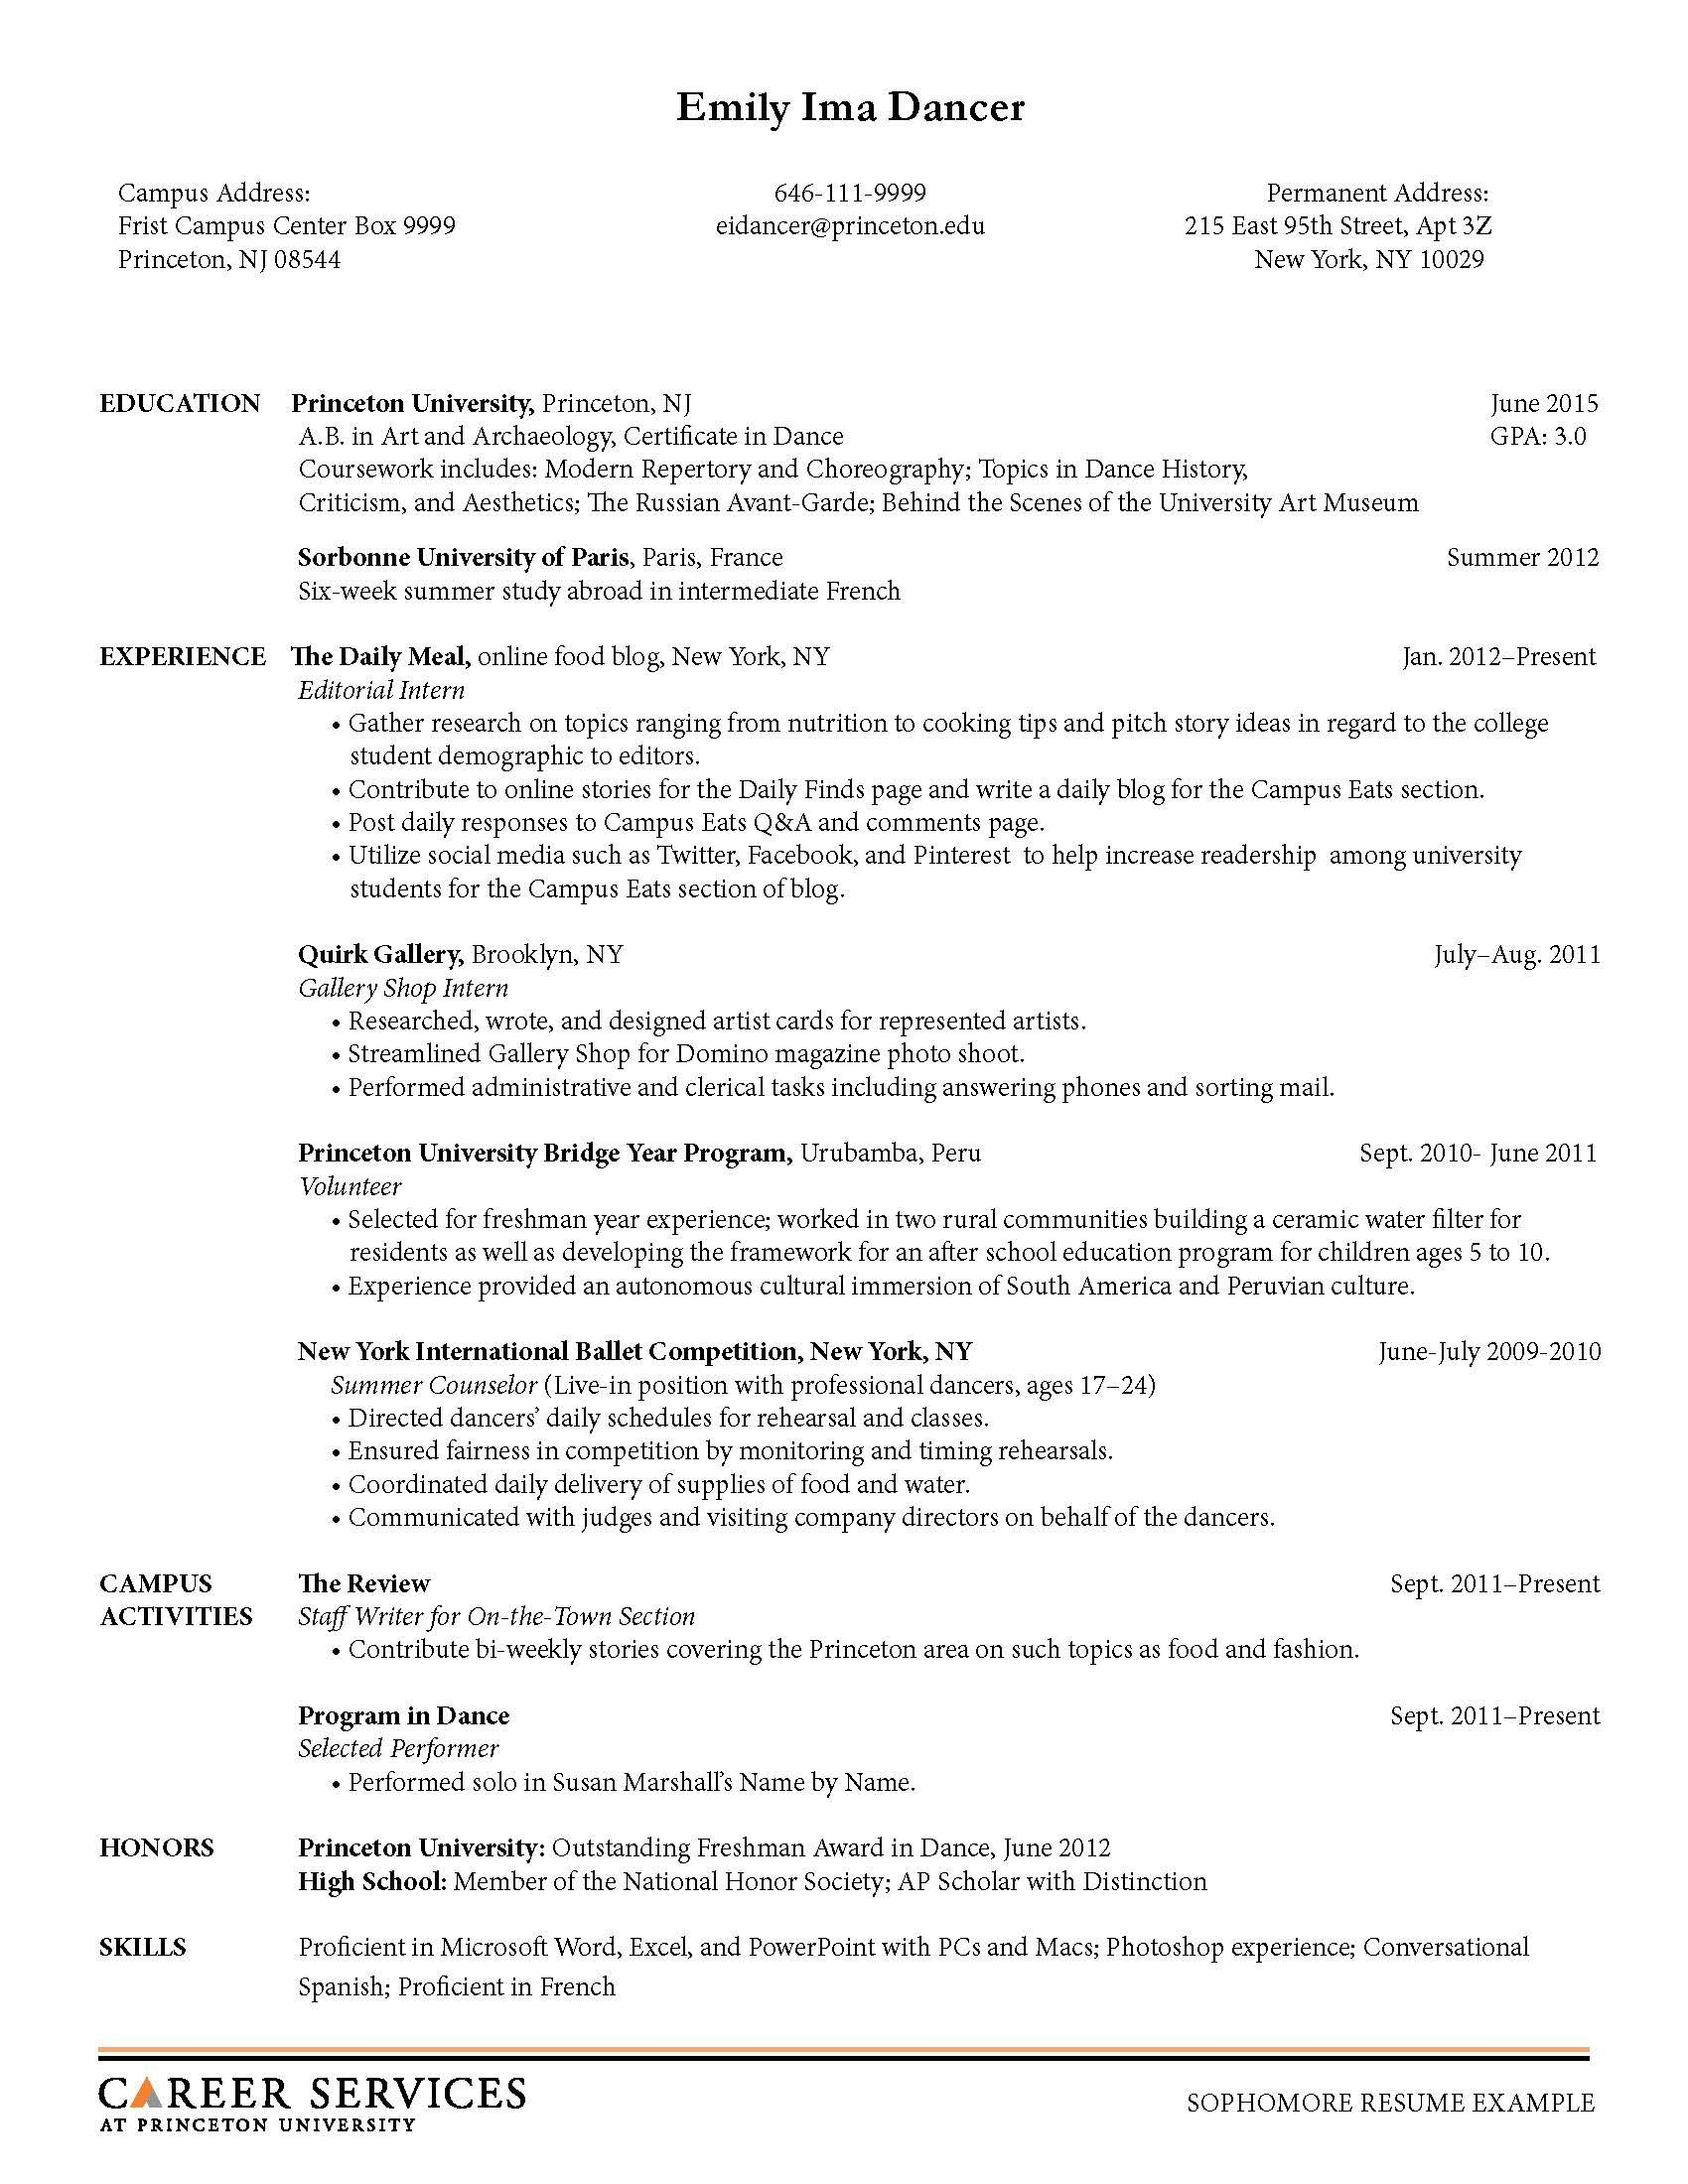 Opposenewapstandardsus  Inspiring Sample Resume Resume And Career On Pinterest With Great Medical Office Assistant Resume Besides Pet Sitter Resume Furthermore Resume Binder With Amusing Proper Spelling Of Resume Also Server Resume Objective In Addition Food Runner Resume And Resume Summary Sample As Well As Michigan Works Resume Additionally Sample Office Manager Resume From Pinterestcom With Opposenewapstandardsus  Great Sample Resume Resume And Career On Pinterest With Amusing Medical Office Assistant Resume Besides Pet Sitter Resume Furthermore Resume Binder And Inspiring Proper Spelling Of Resume Also Server Resume Objective In Addition Food Runner Resume From Pinterestcom